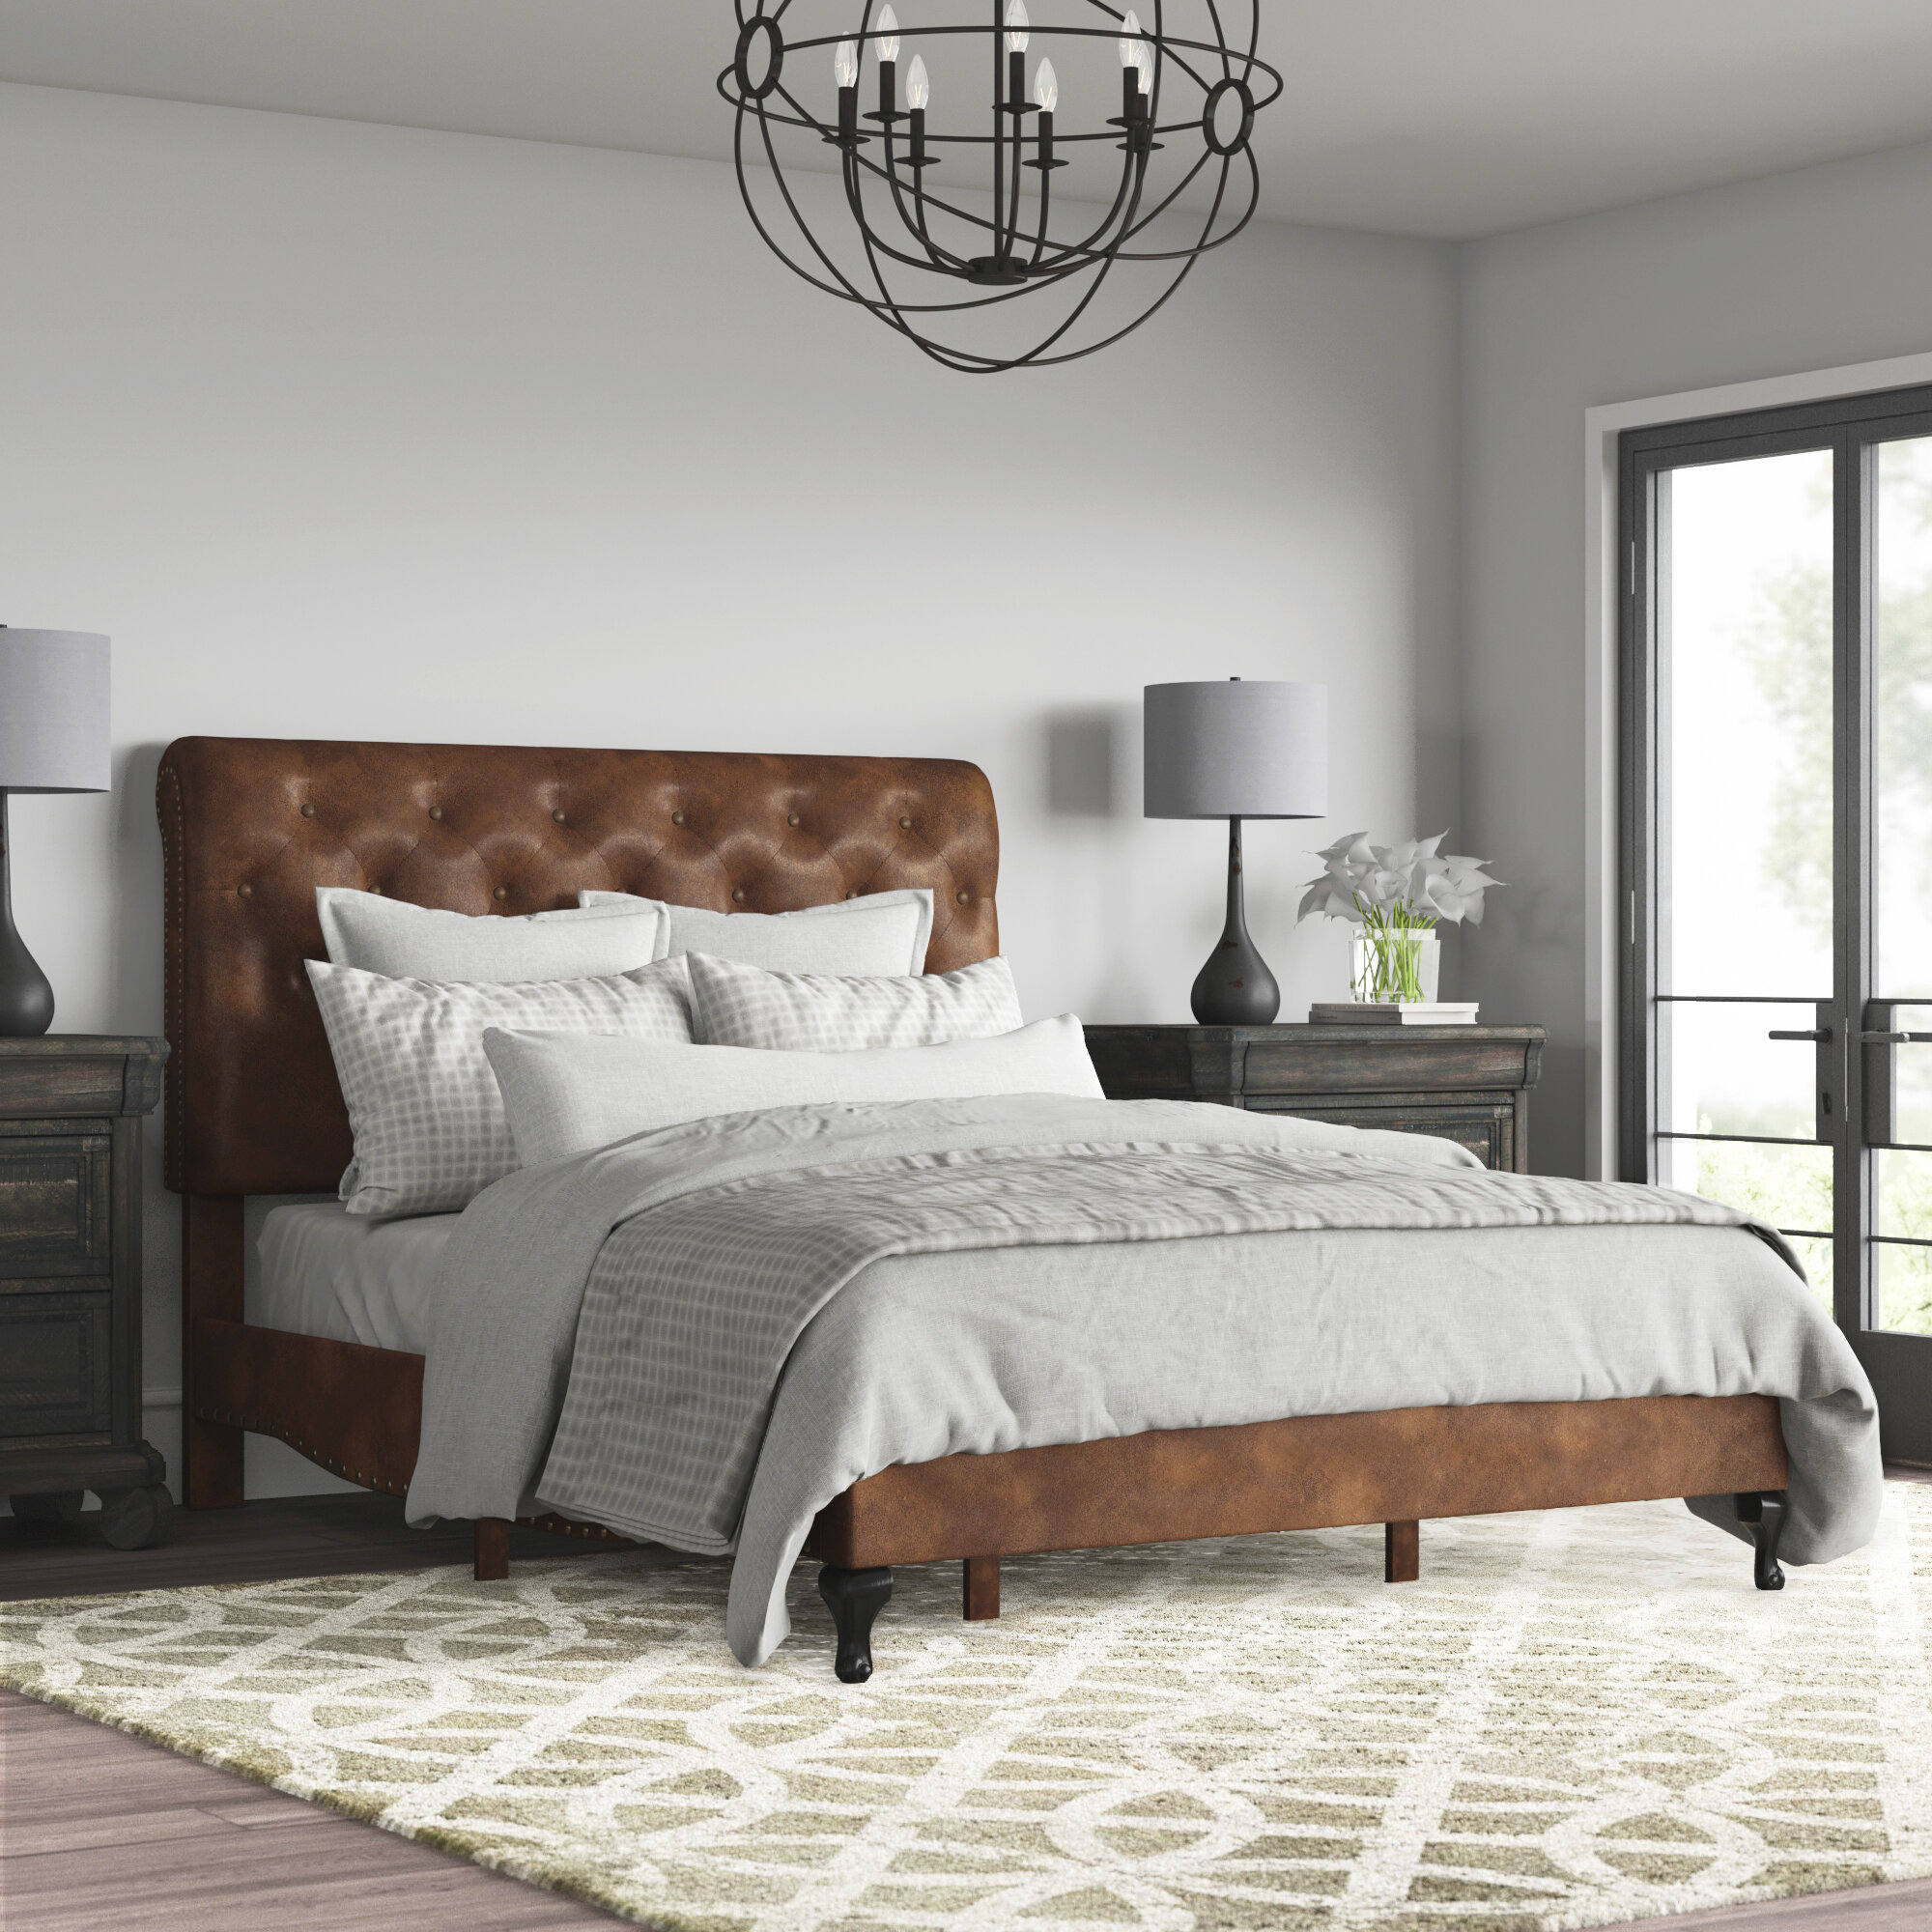 Greyleigh Sheena Upholstered Standard Bed Reviews Wayfair